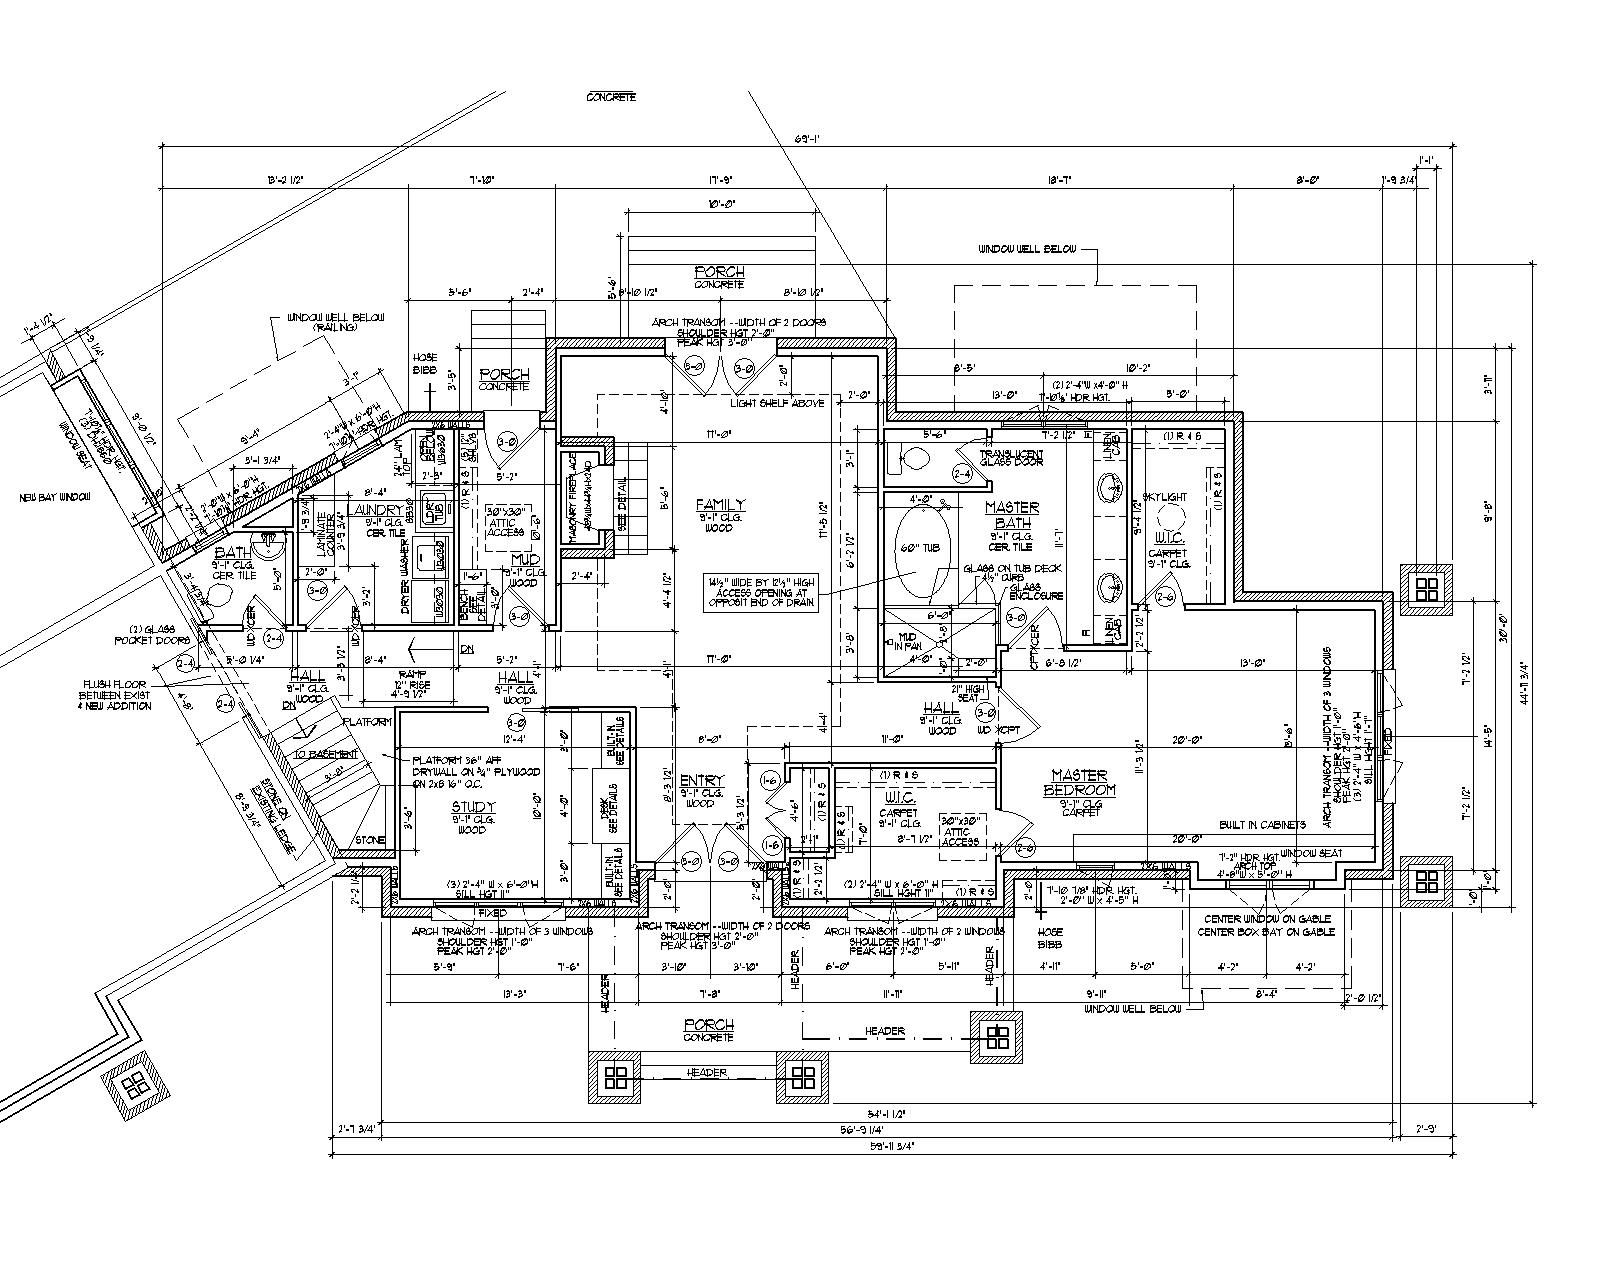 D Autocad House Plans Residential Building Drawings Cad Services Blueprints For Residential Homes